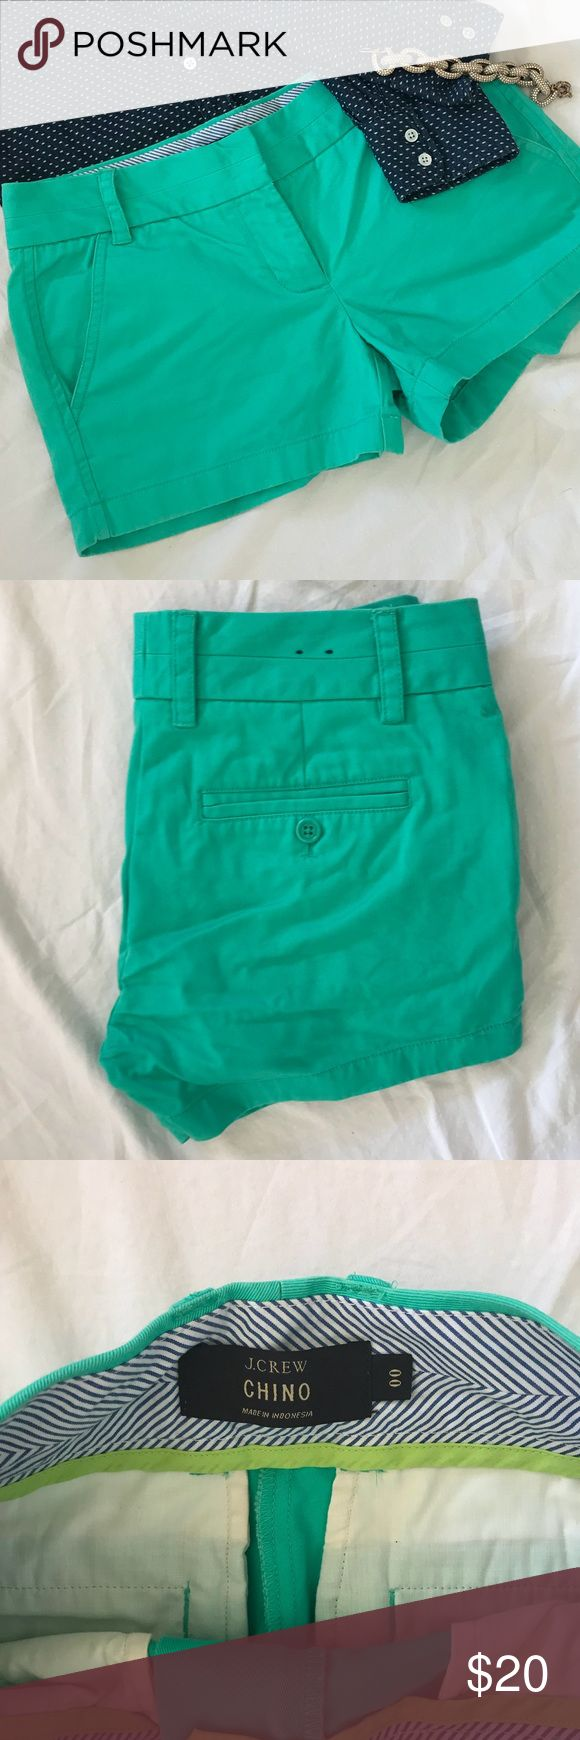 """J. Crew Chino Teal Shorts Size 00 J. Crew Chino Teal Shorts Size 00 - Excellent used condition - Measurements (lying flat): Waist ~ 15"""", Hips ~ 17"""", Length ~ 10"""", Inseam ~ 3"""" J. Crew Shorts"""